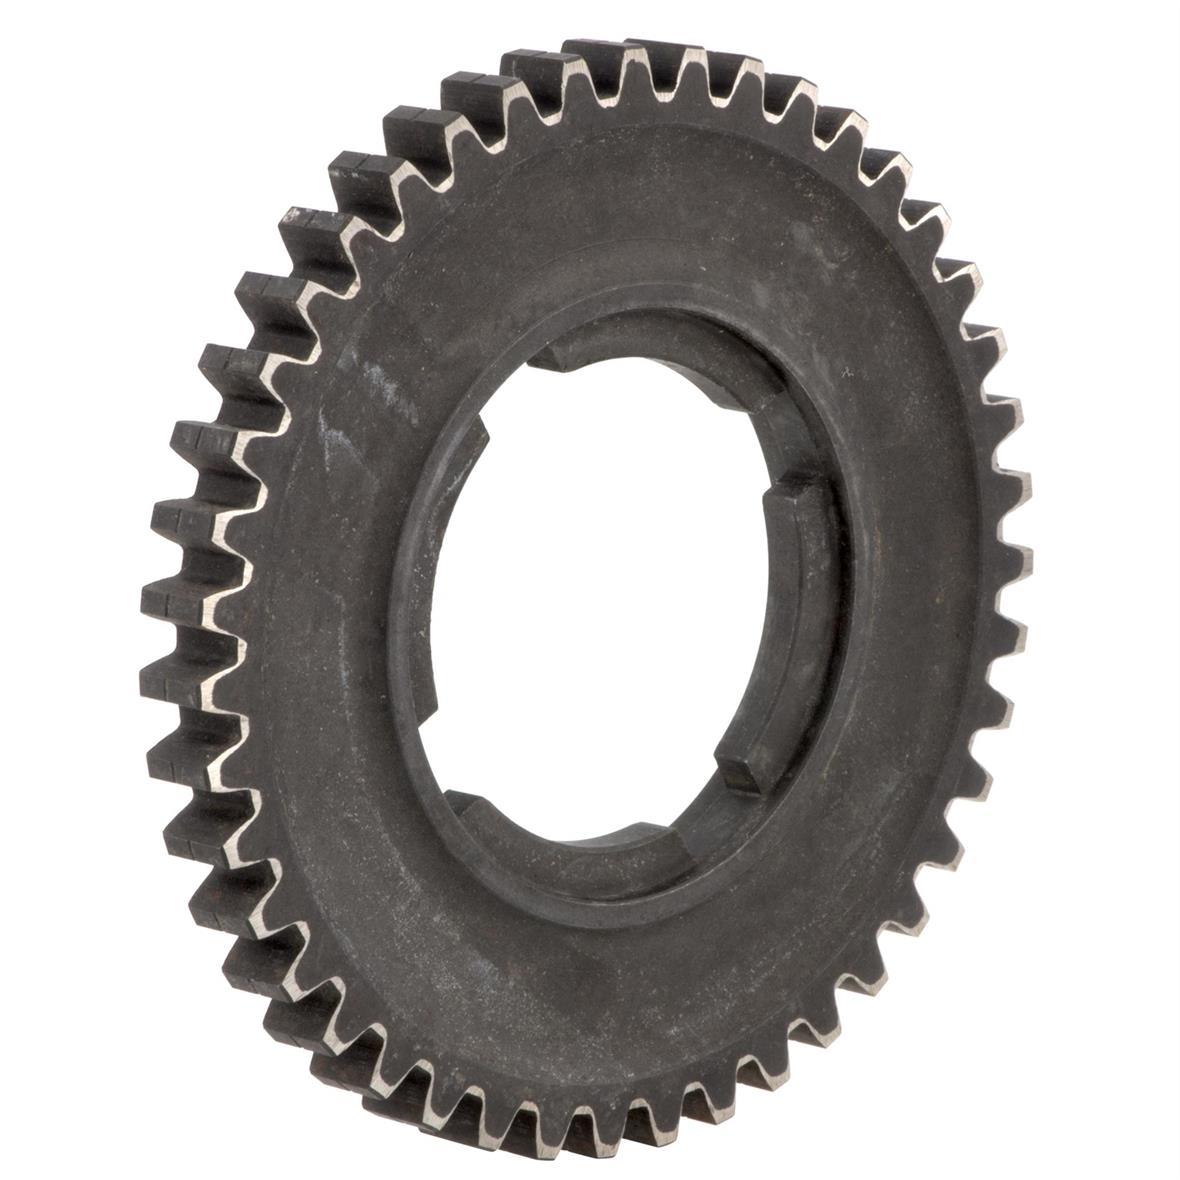 Product Image for 'Gear Cog 43 teeth 2nd gearTitle'